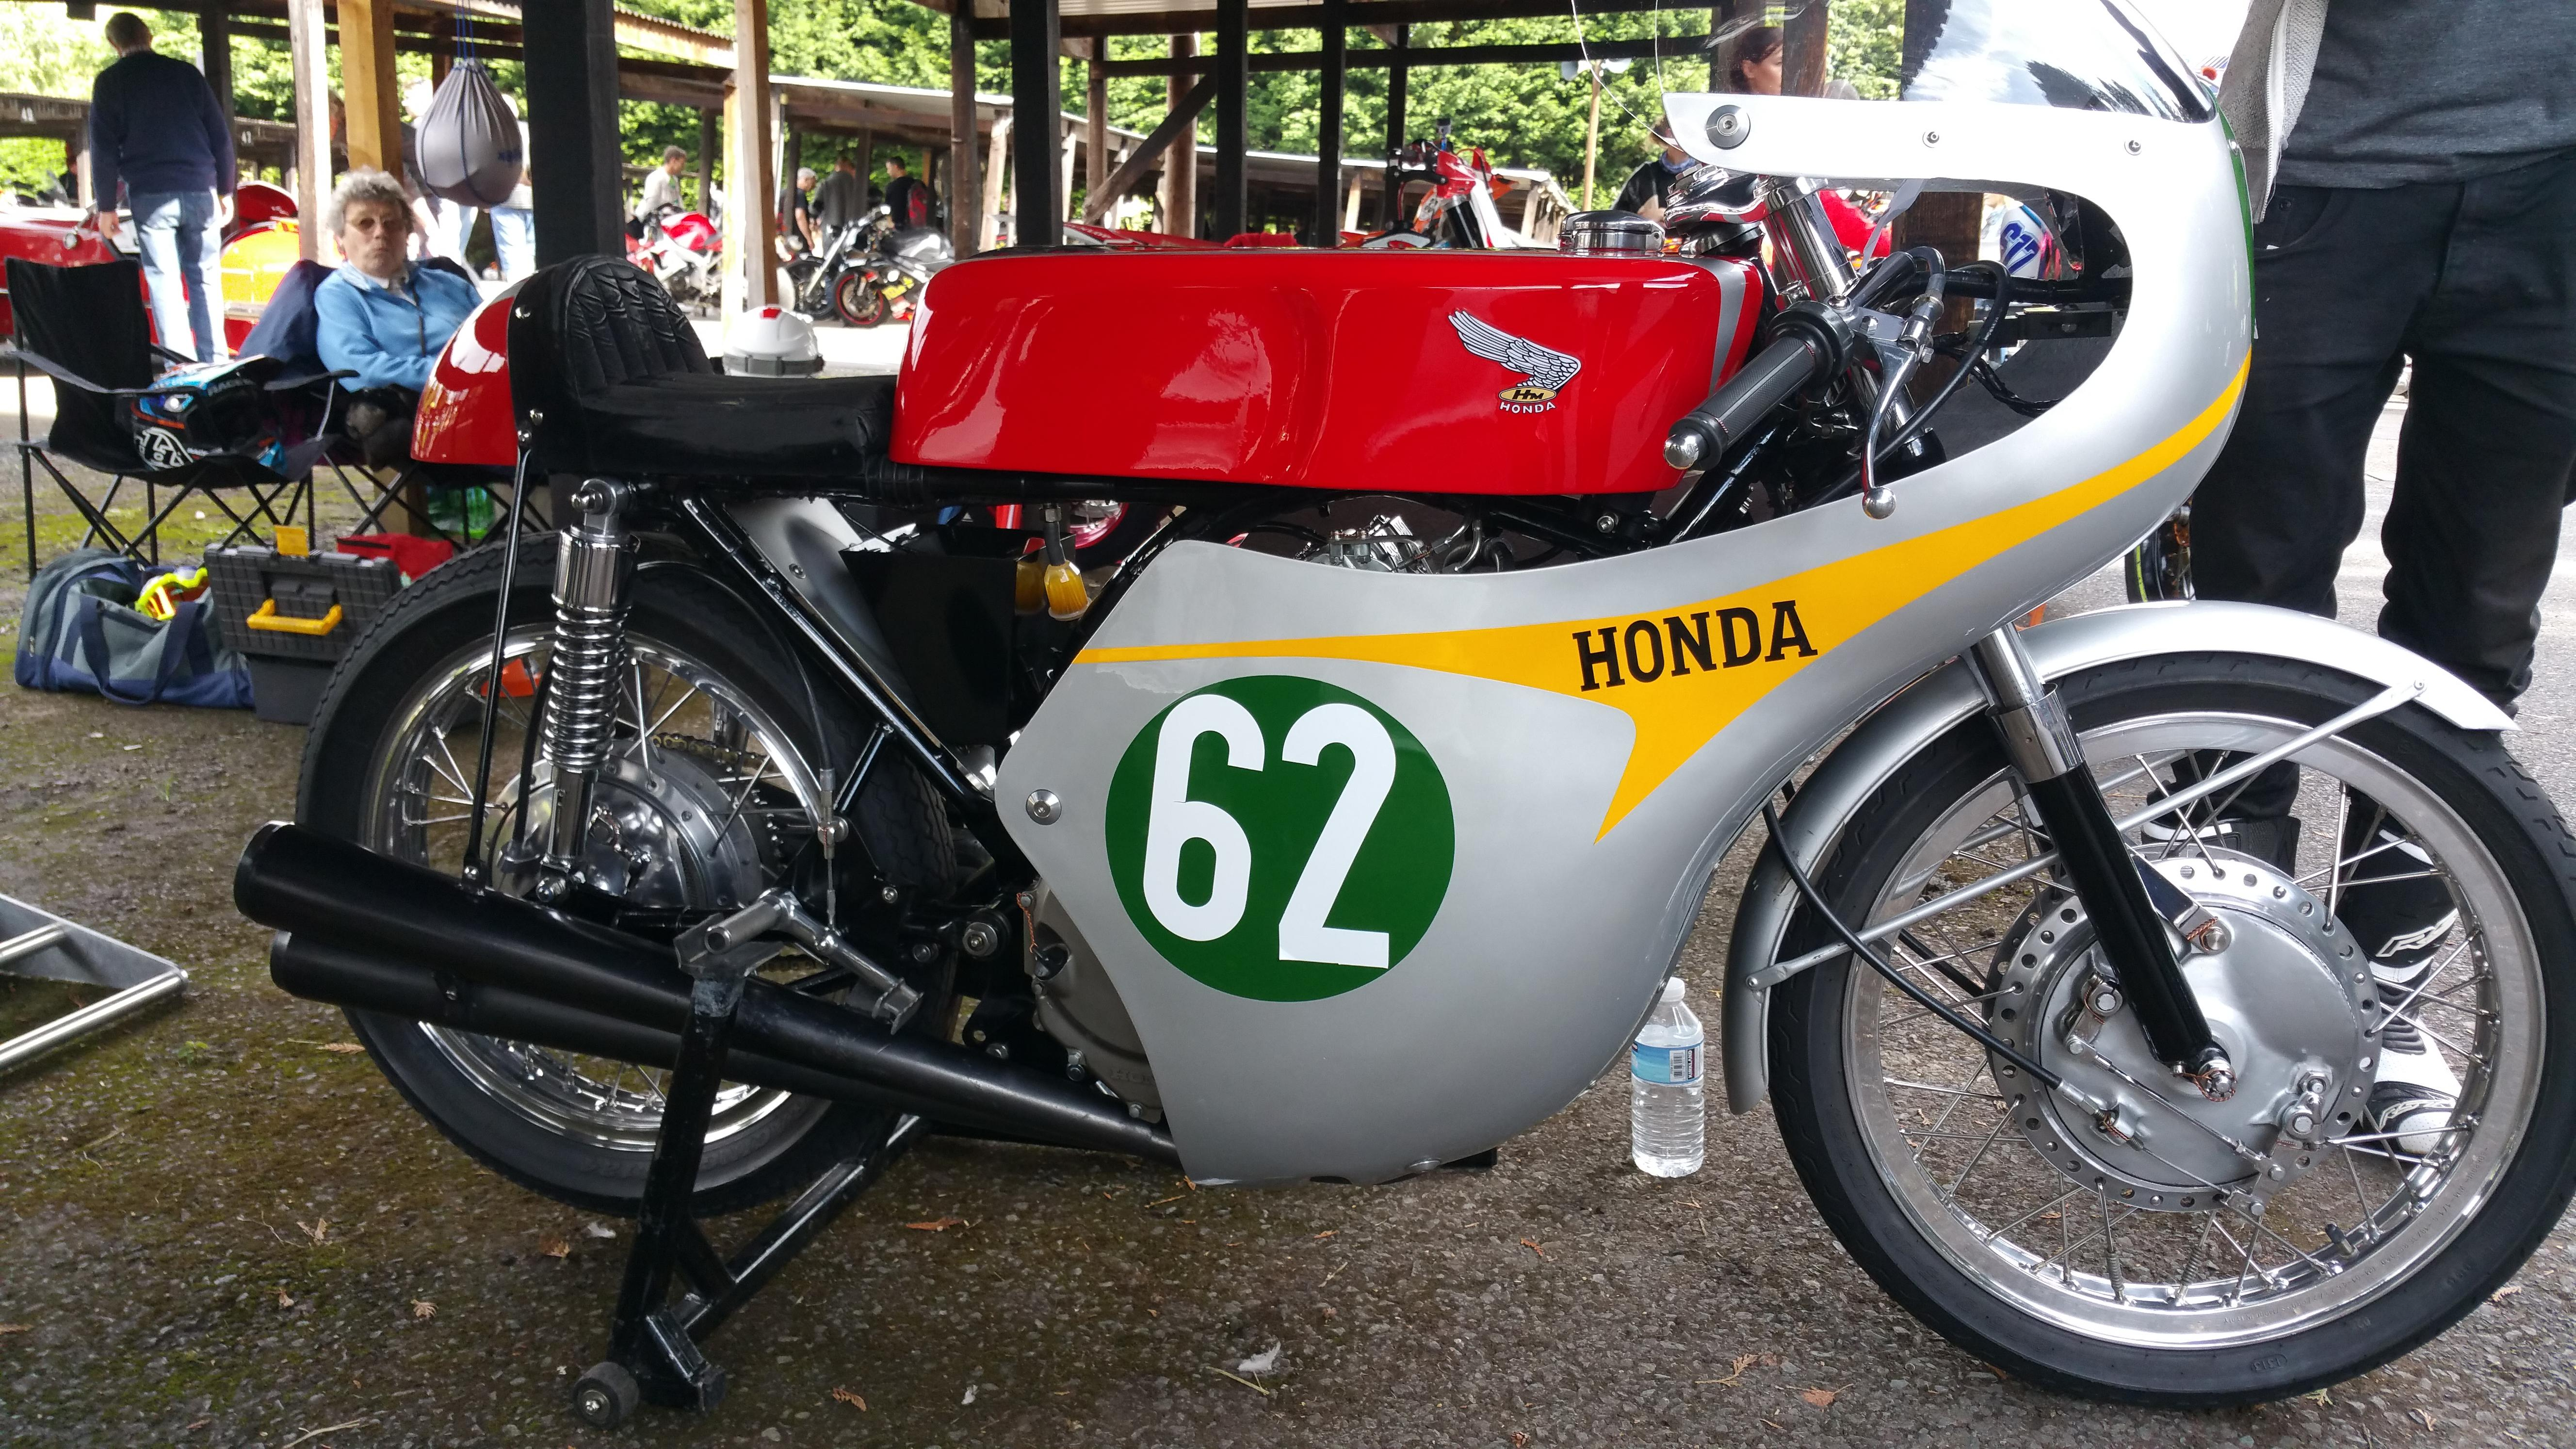 Now This Is What I Call A CB250 Cafe Racer 20150913 124729